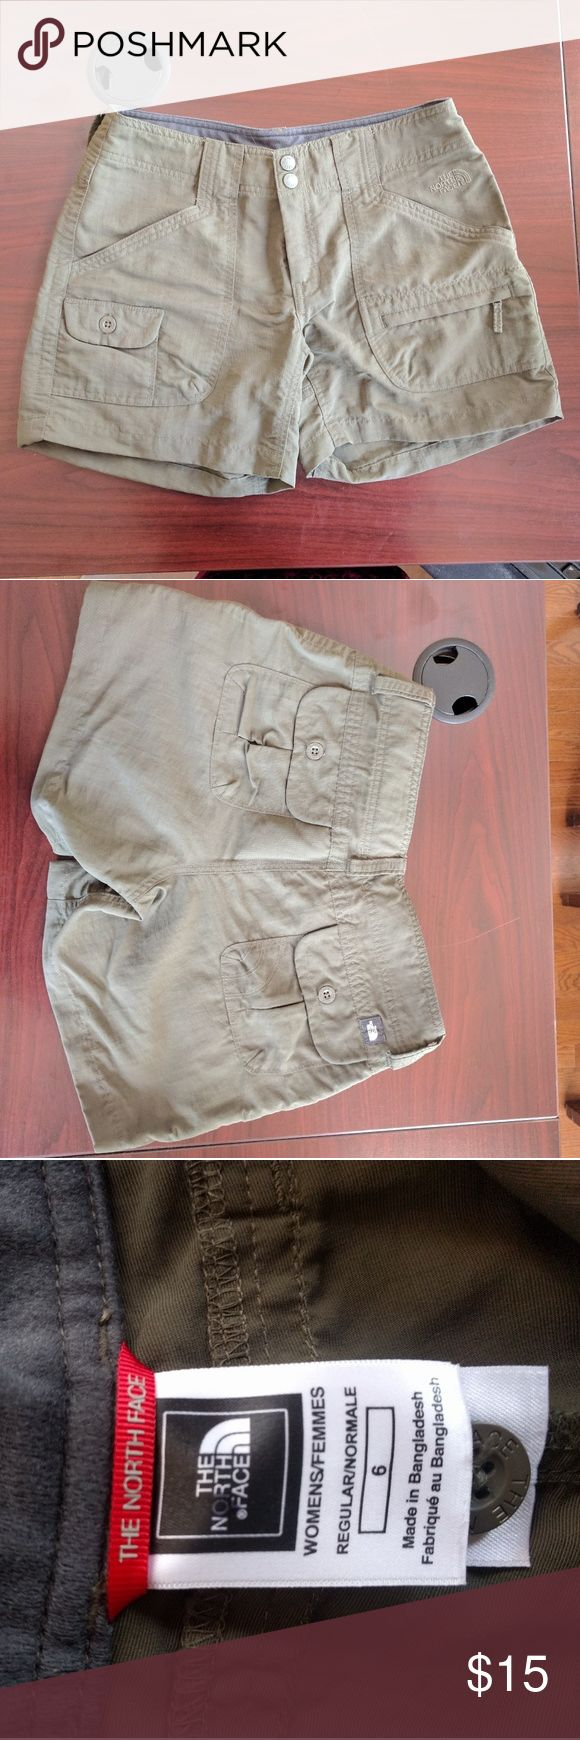 North Face shorts, size 6 NWOT Olive green North face shorts. Never worn but bought from an outlet. The North Face Shorts Cargos